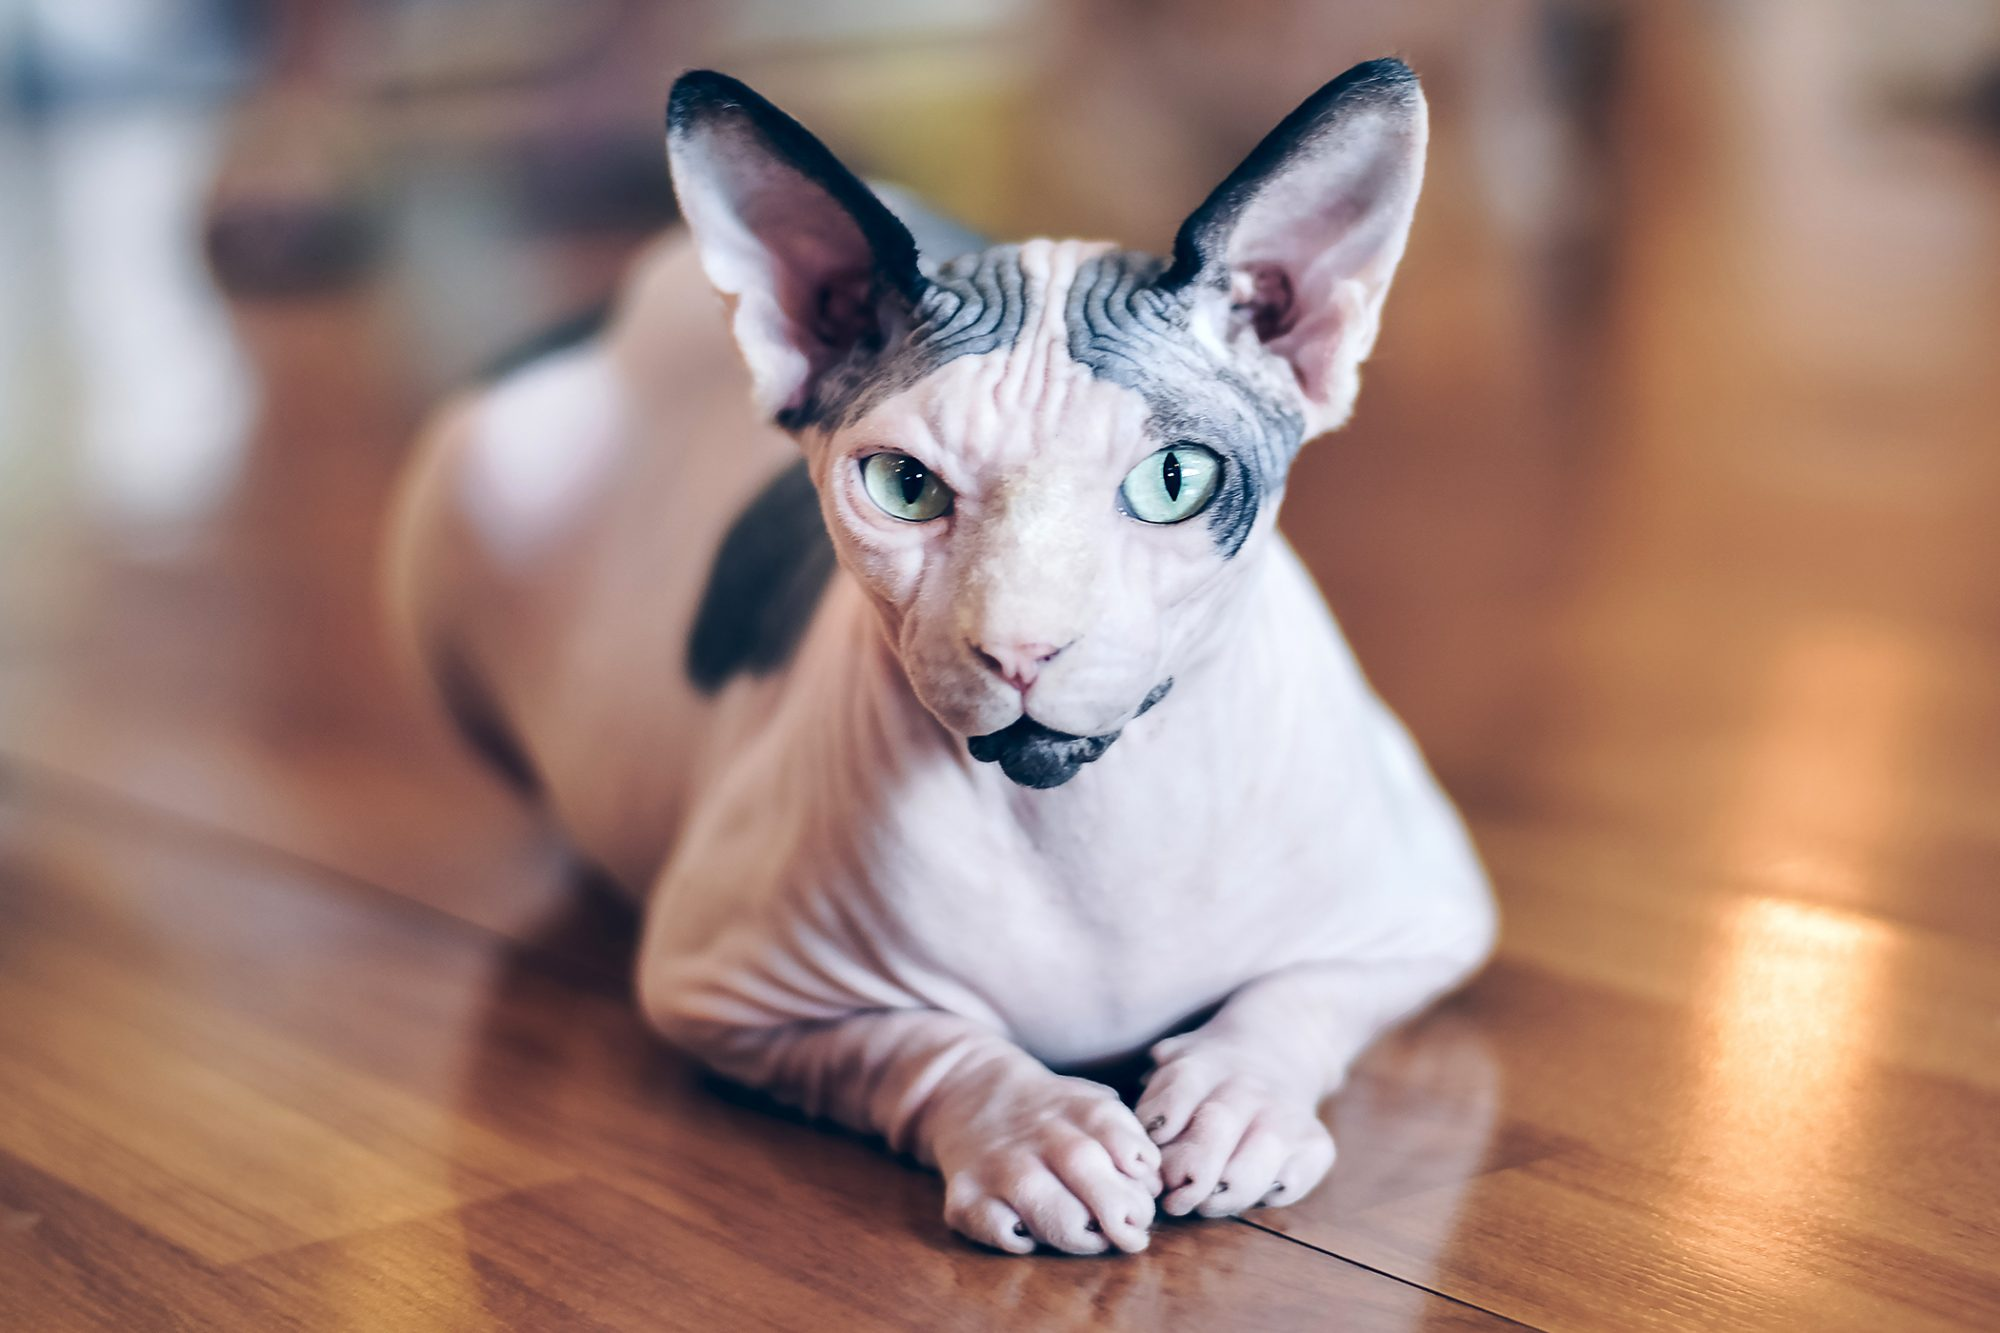 Spotted sphynx cat lays on hardwood floor and looks at camera